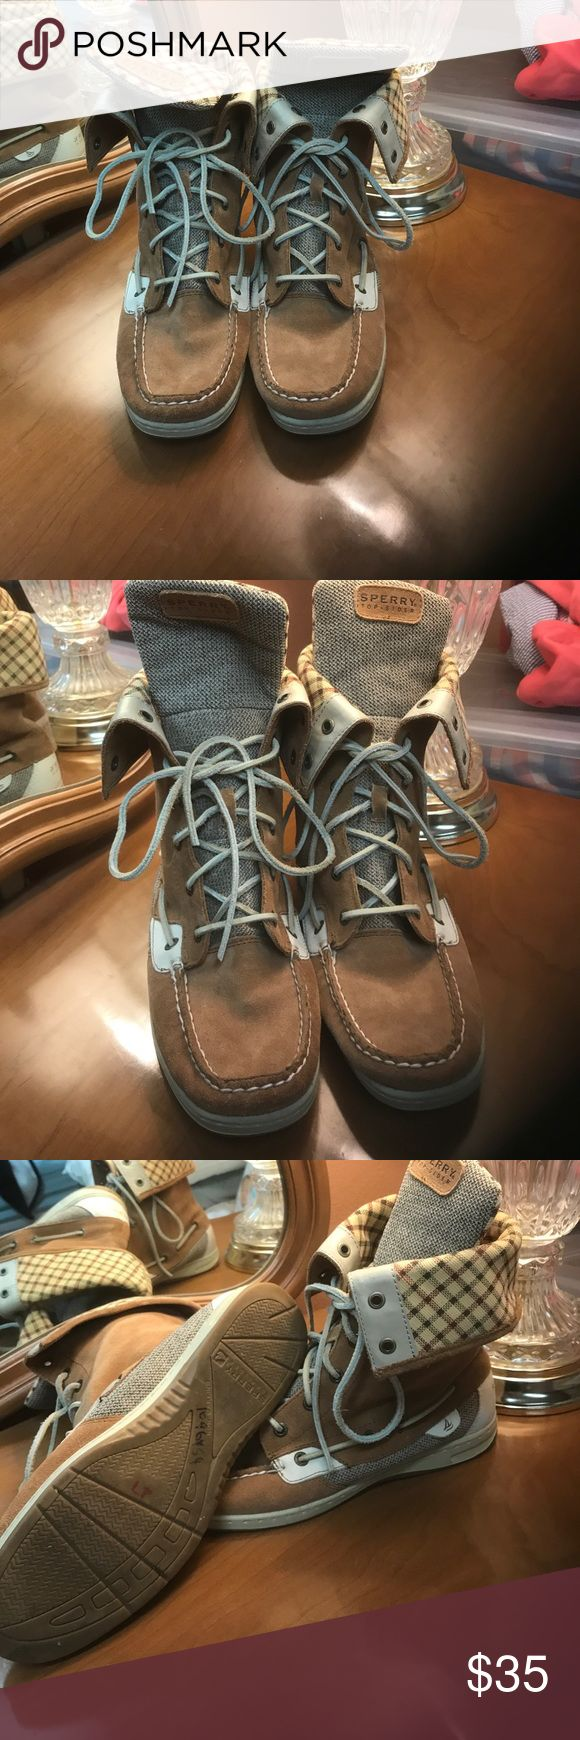 SALE💥Women's Sperry high top Great shoes! I'm selling due to issues with my feet; can't wear a lot of this style anymore Sperry Top-Sider Shoes